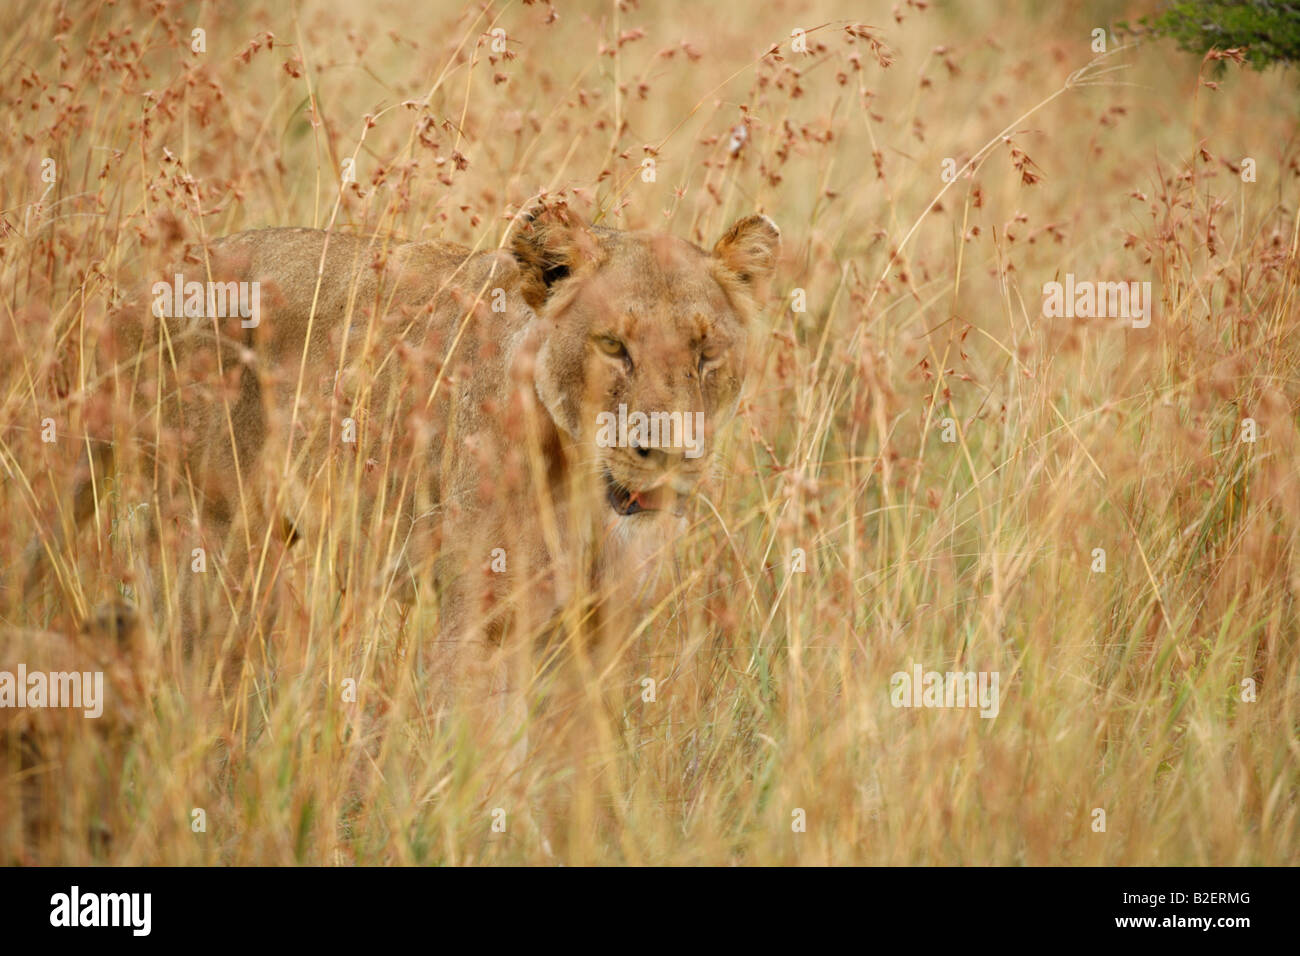 Lioness walking in long grass - Stock Image